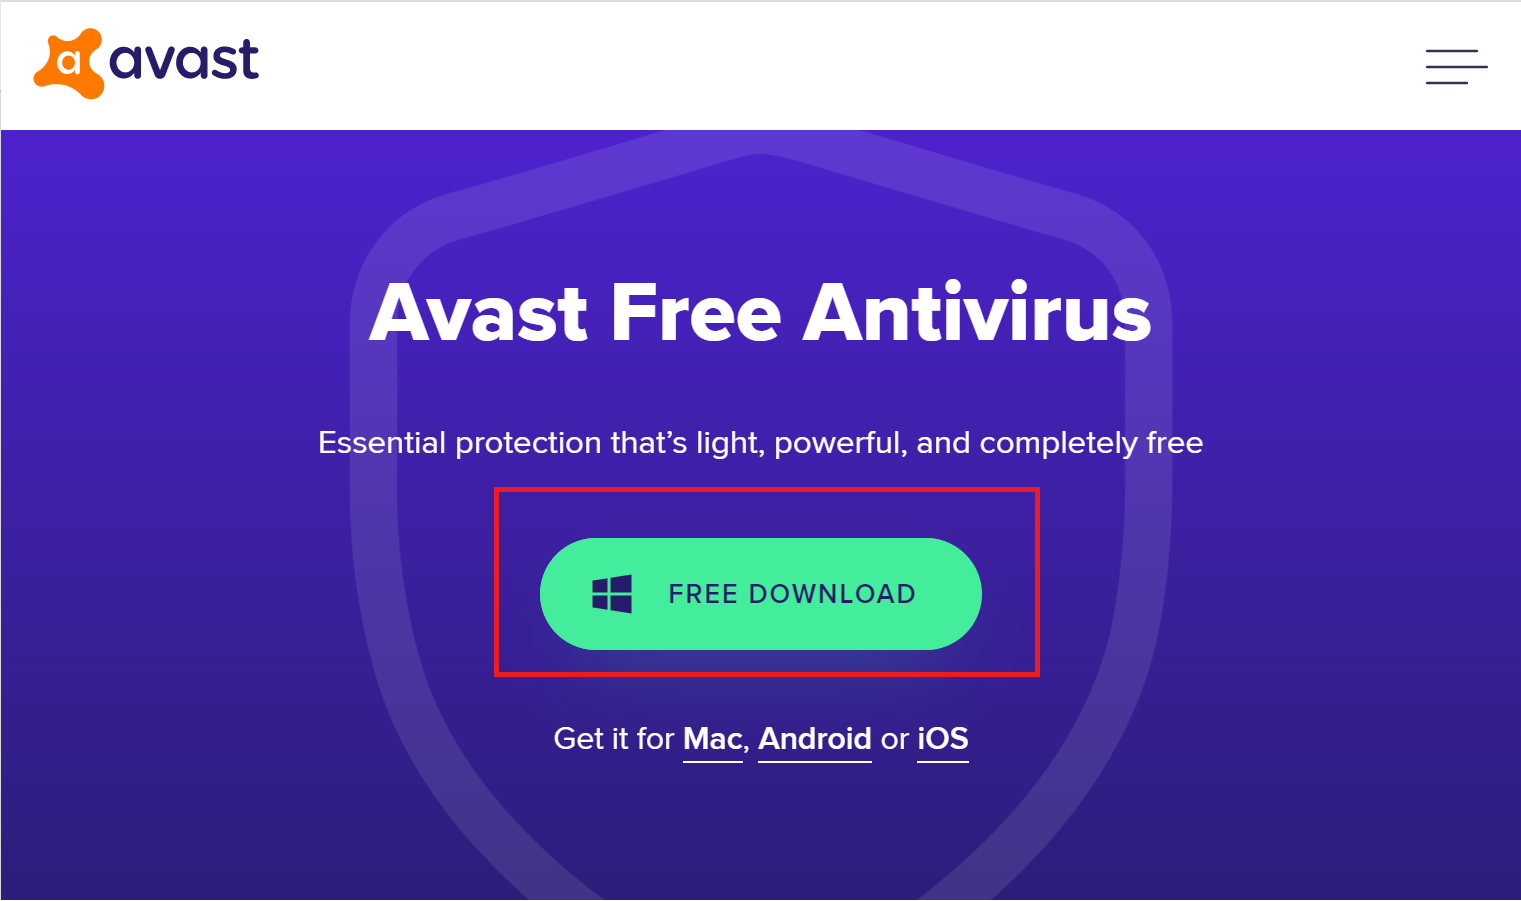 click on free download to download avast